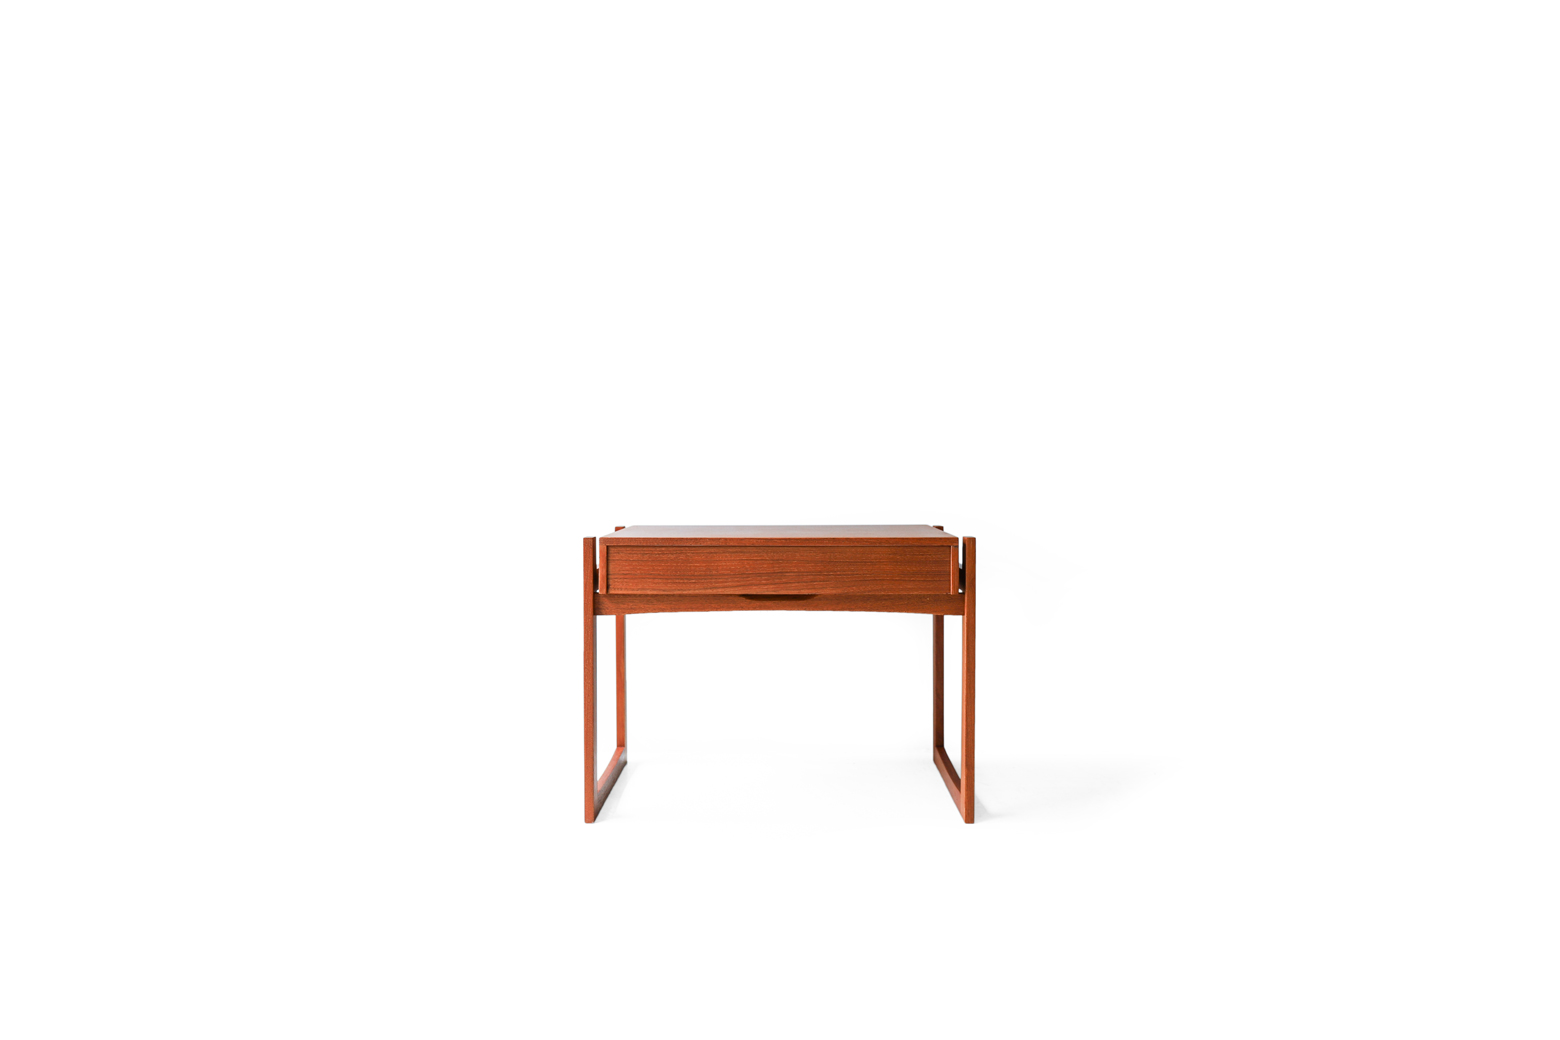 Danish Vintage Drawer Side Table/デンマーク ヴィンテージ ドロワーサイドテーブル チェスト チーク材 北欧家具